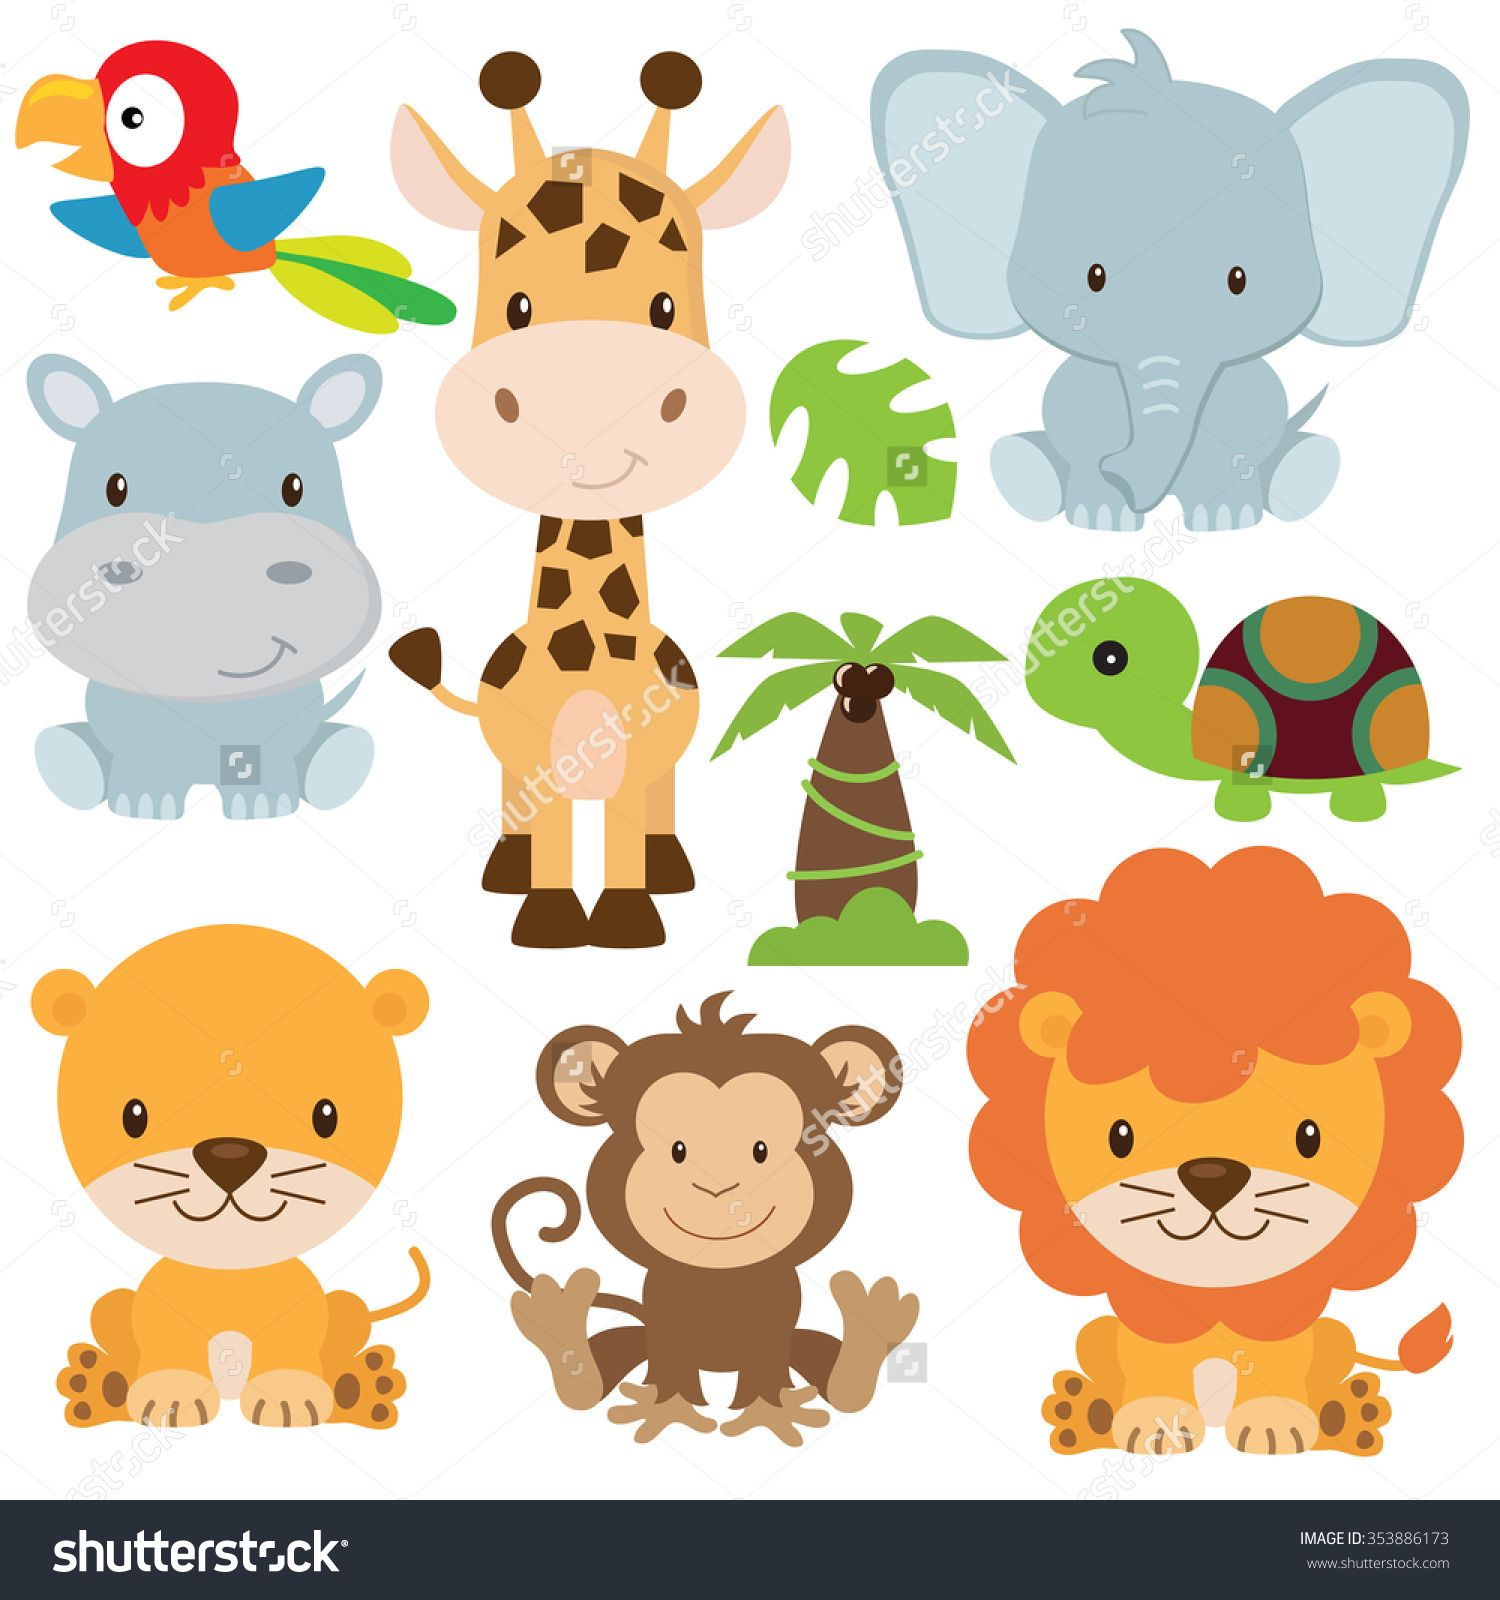 Image result for Free Animal SVG Files Baby jungle